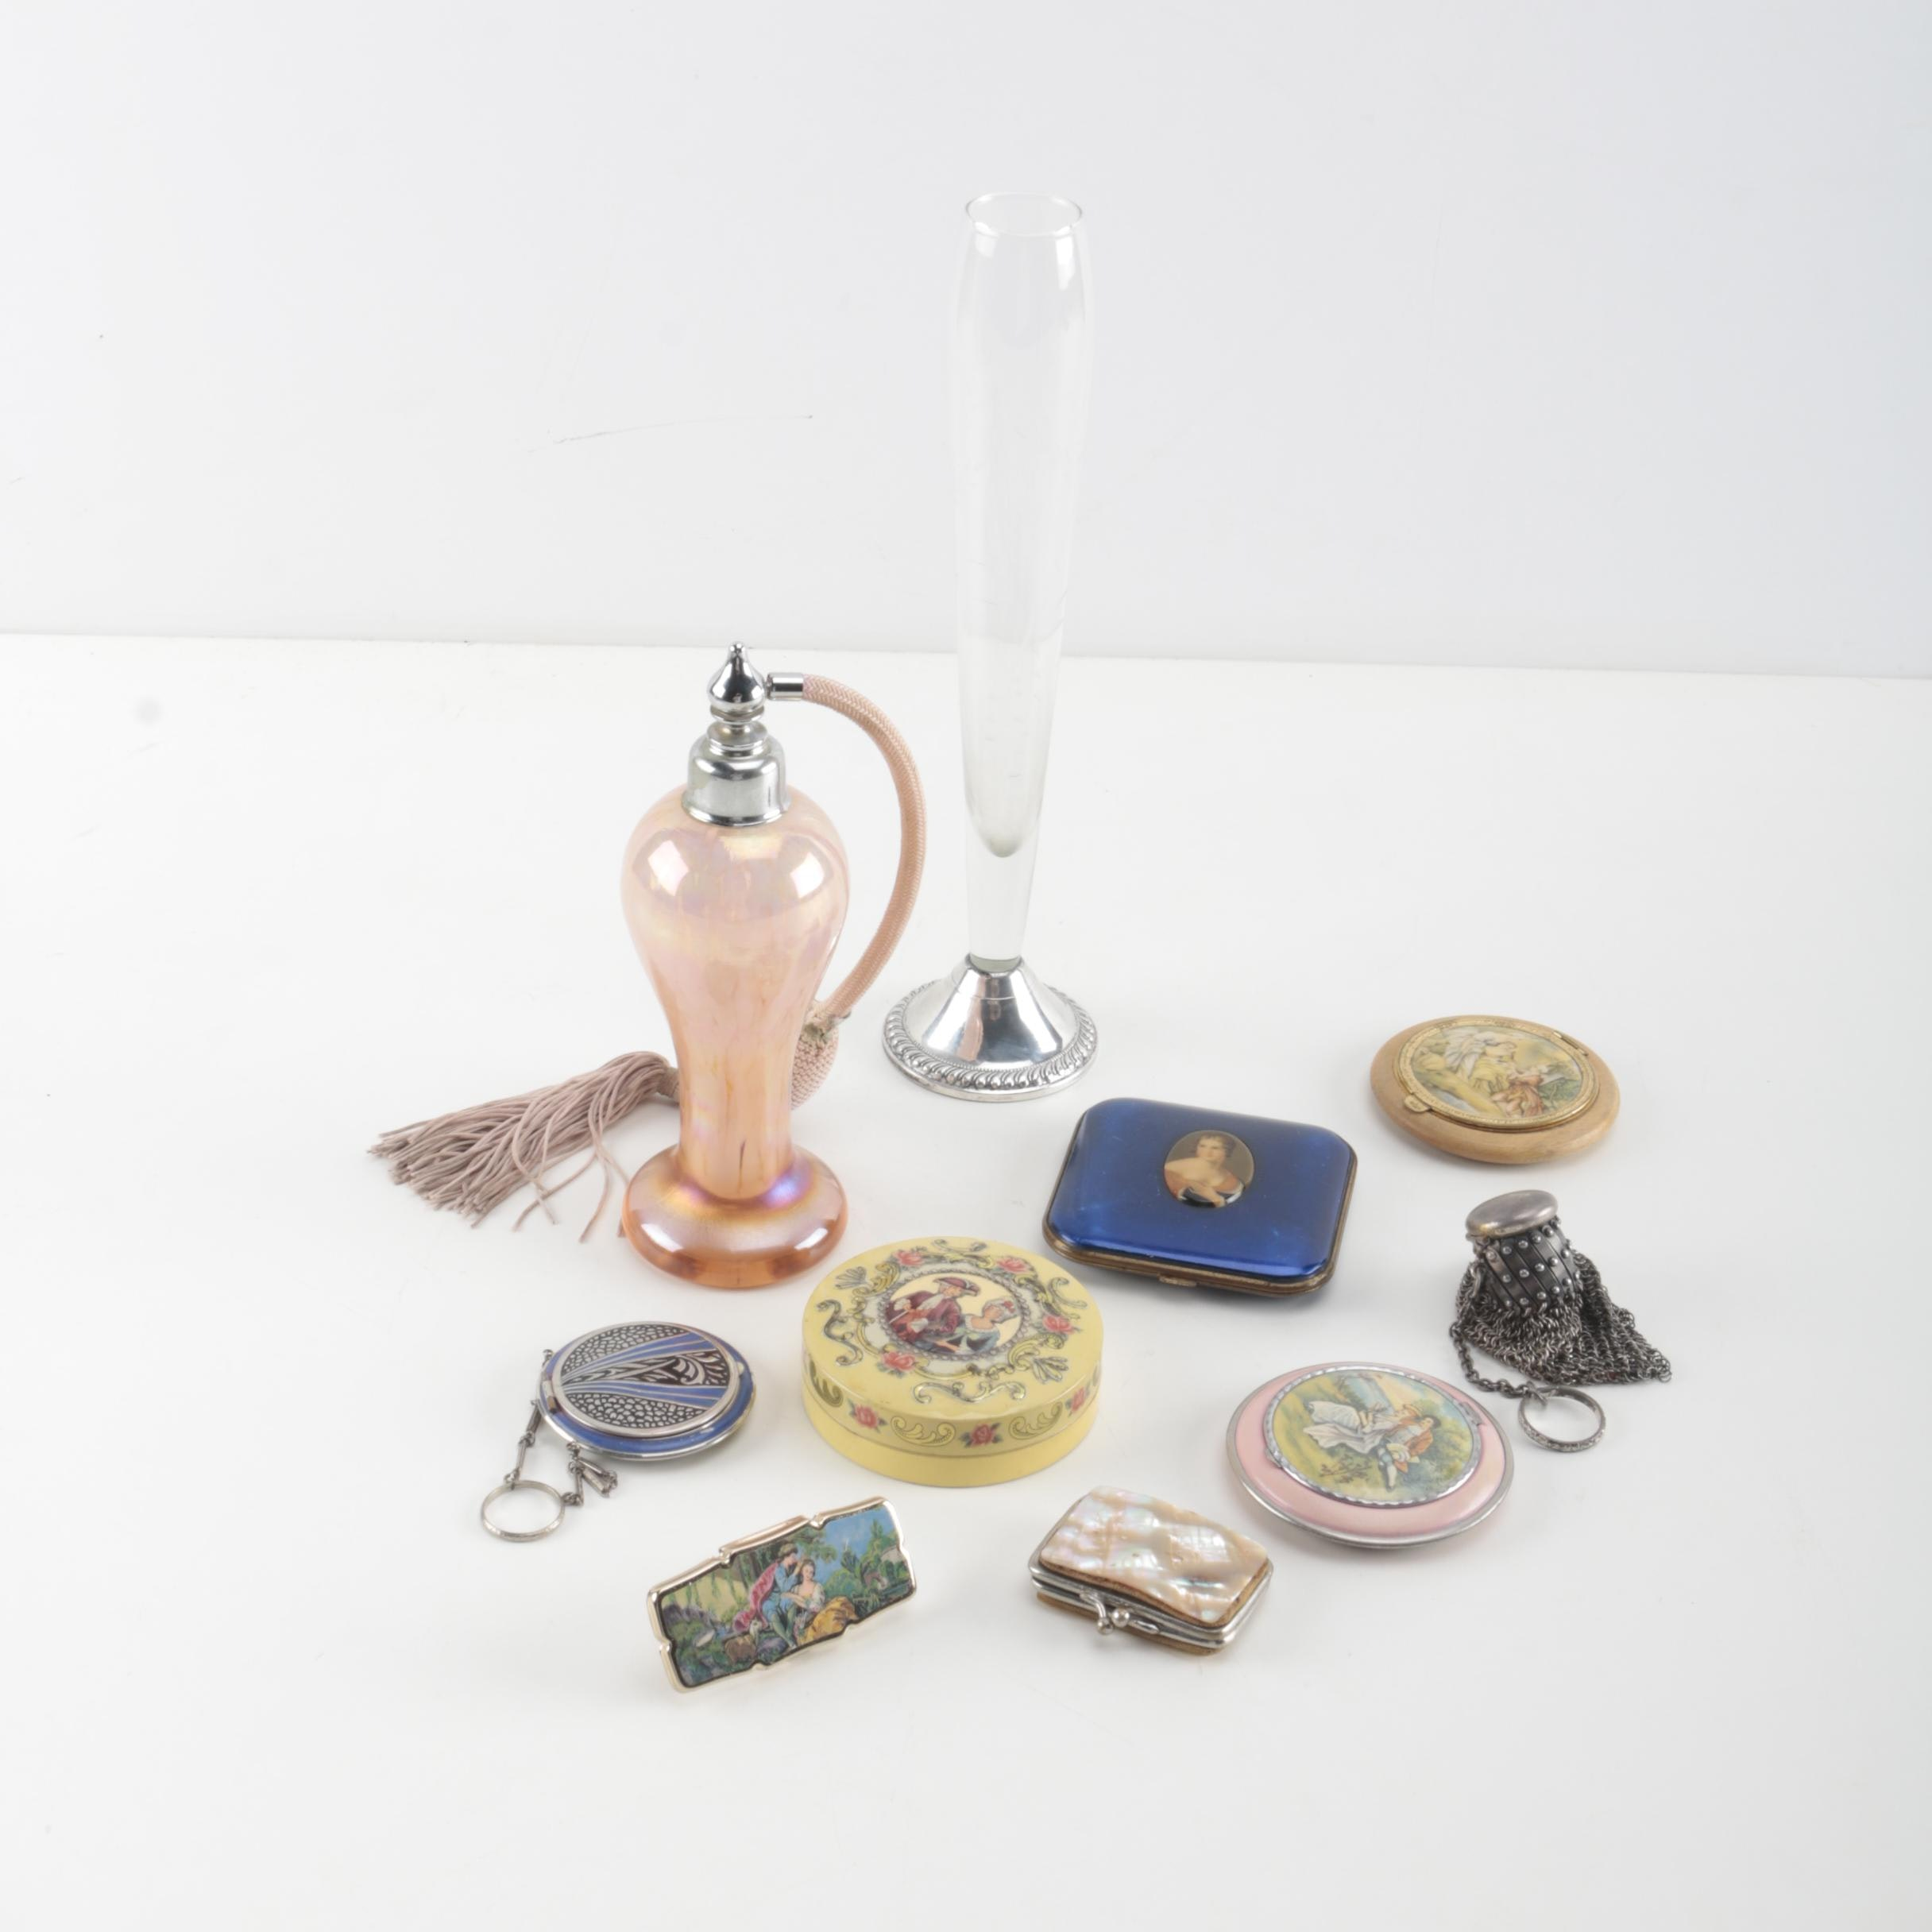 Blown Glass Perfume Atomizer and Ornate Vanity Accessories